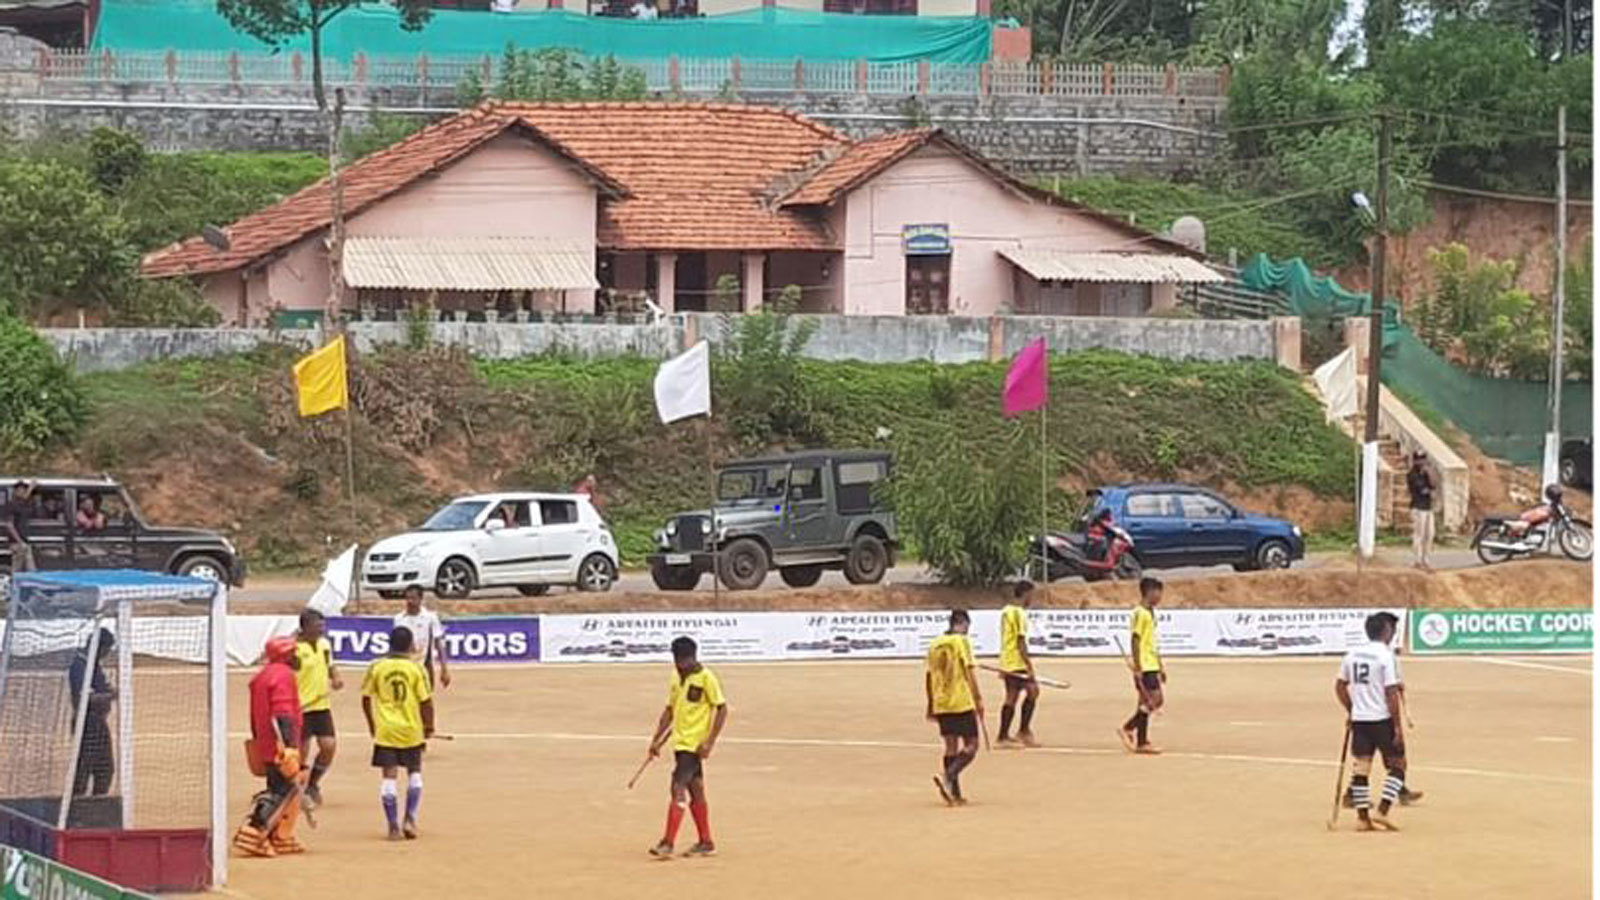 Annual kodava family hockey festival, a month-long event that sees clans battling it out for the trophy every summer